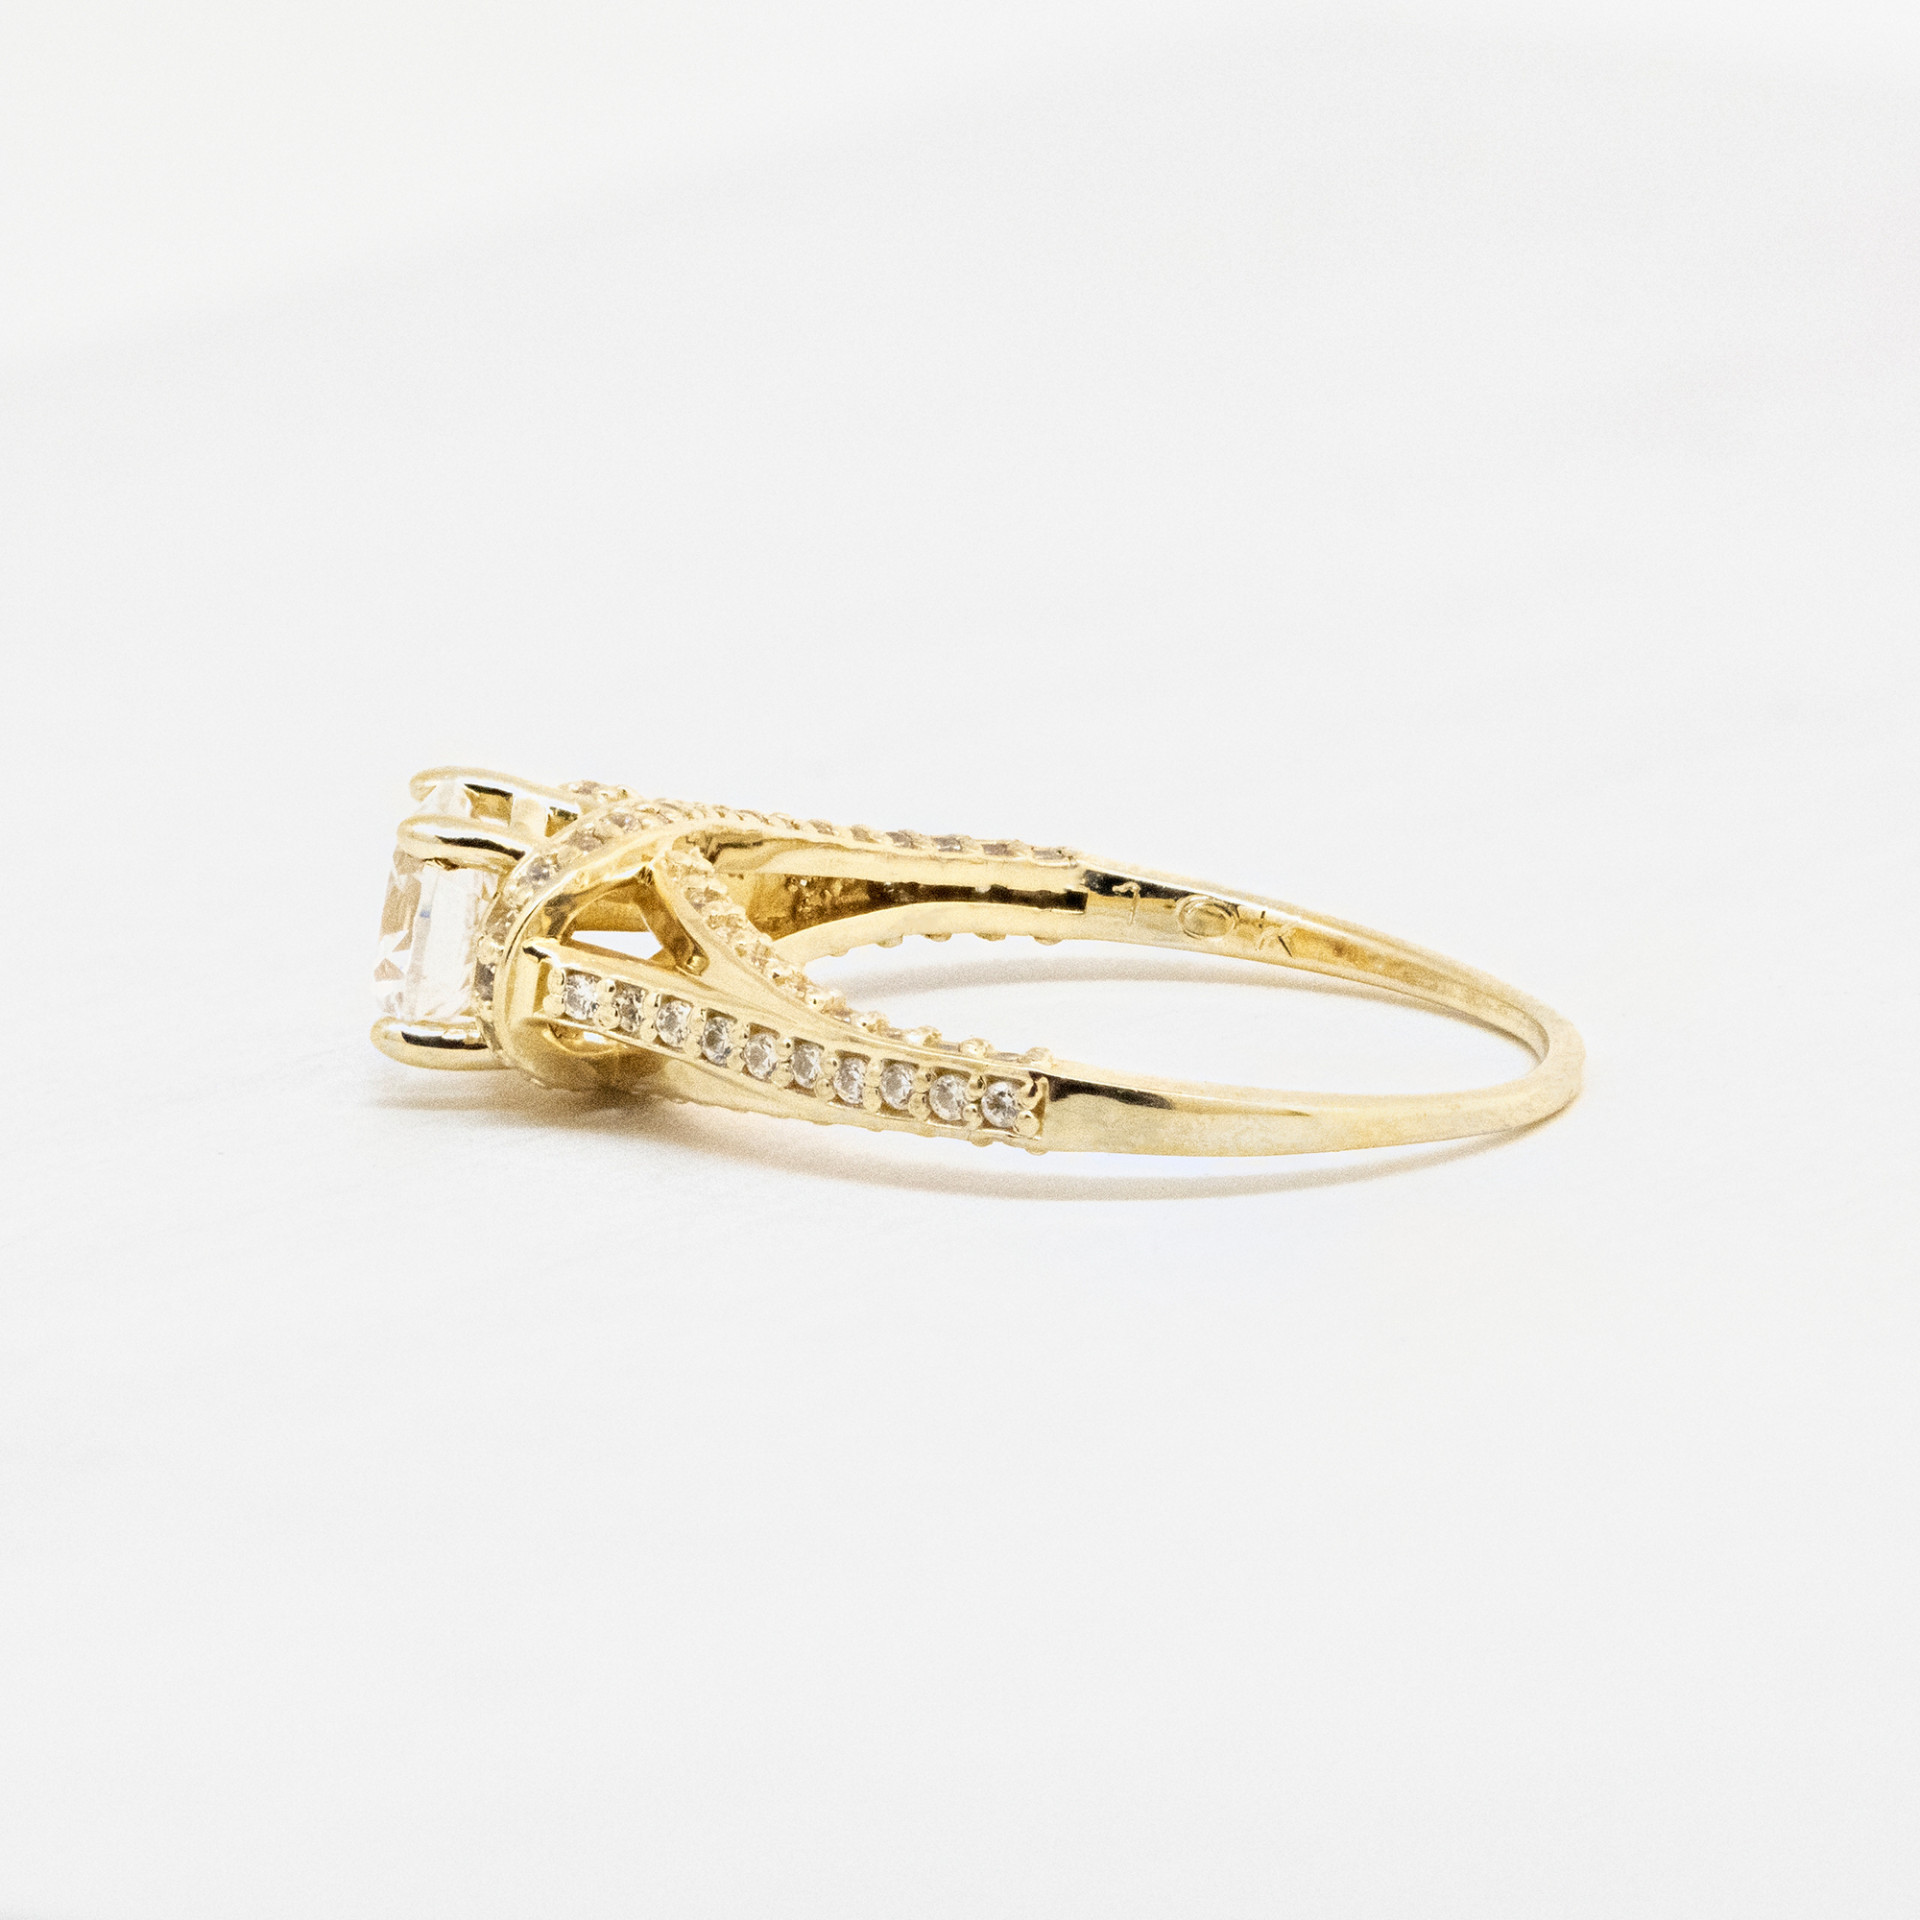 4634a7d1ea1df Discontinued Jessica with 0.84 carat Round Brilliant Center - 10k Yellow  Gold - Ring Size 5.00